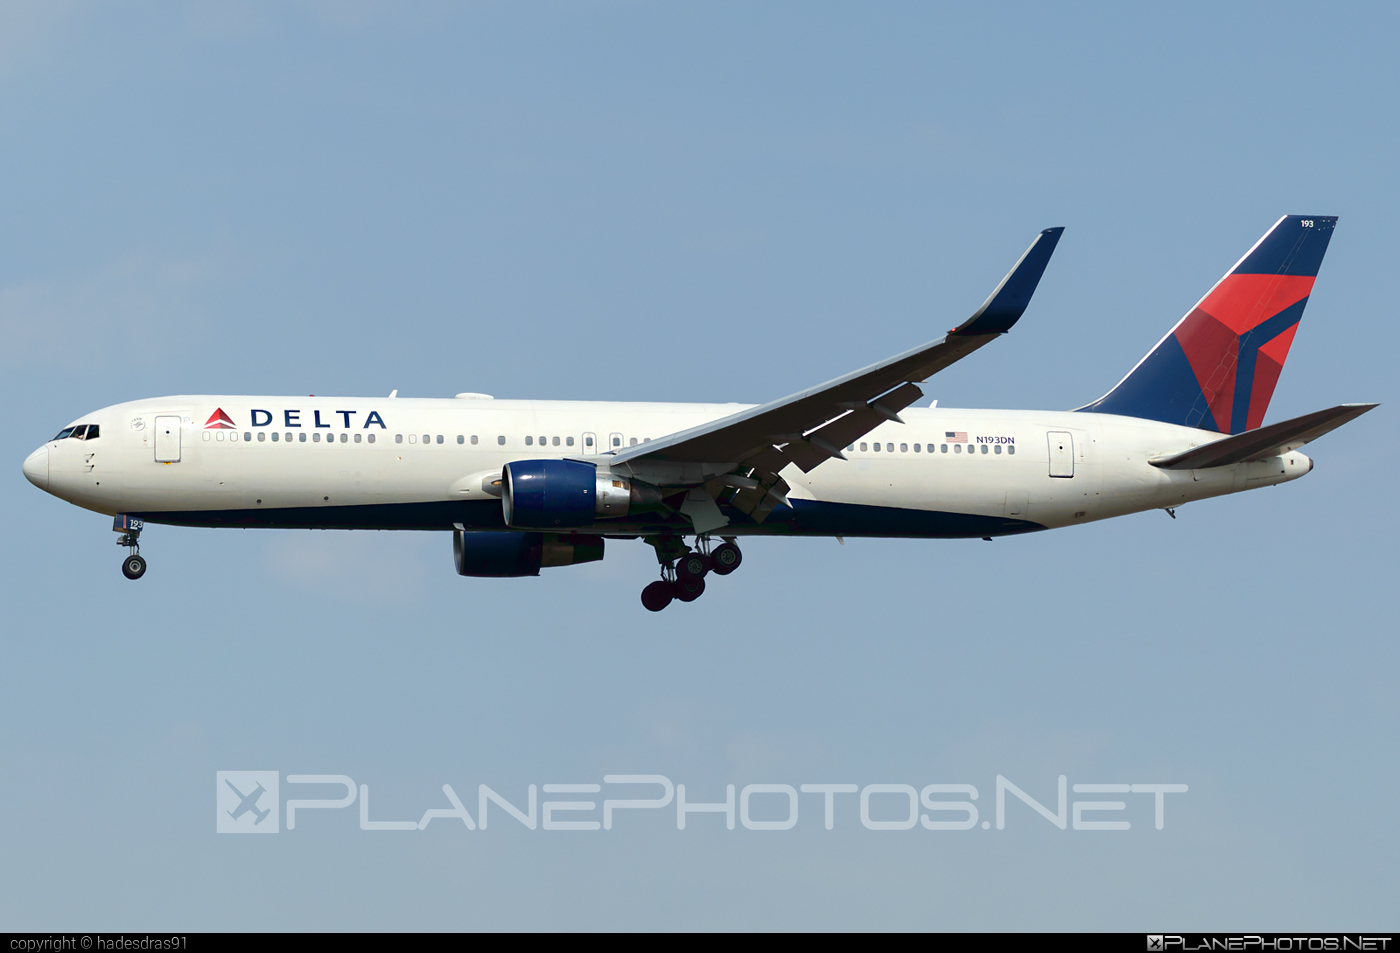 Boeing 767-300ER - N193DN operated by Delta Air Lines #b767 #b767er #boeing #boeing767 #deltaairlines